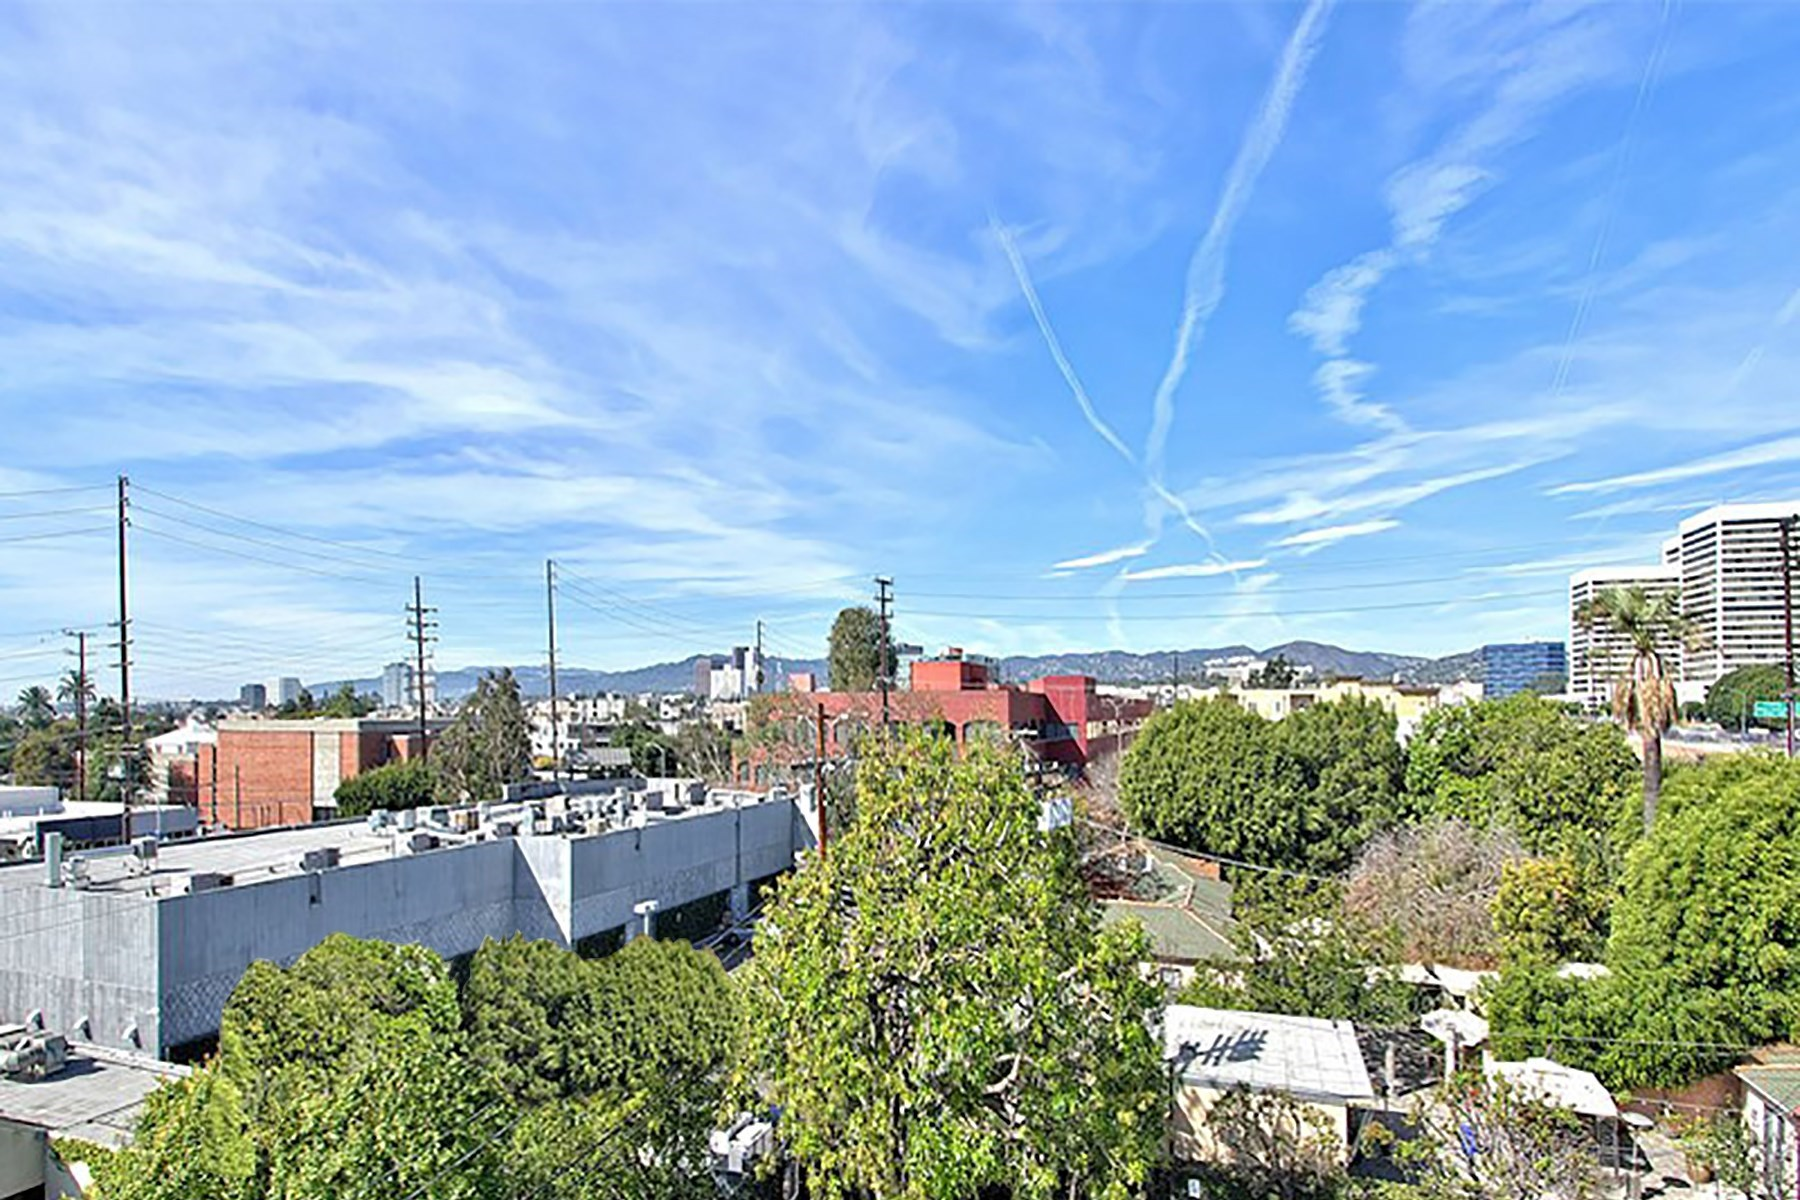 Casa unifamiliar adosada (Townhouse) por un Venta en Happening West LA Townhome 2027 Beloit Street #105 West Los Angeles, Los Angeles, California, 90025 Estados Unidos